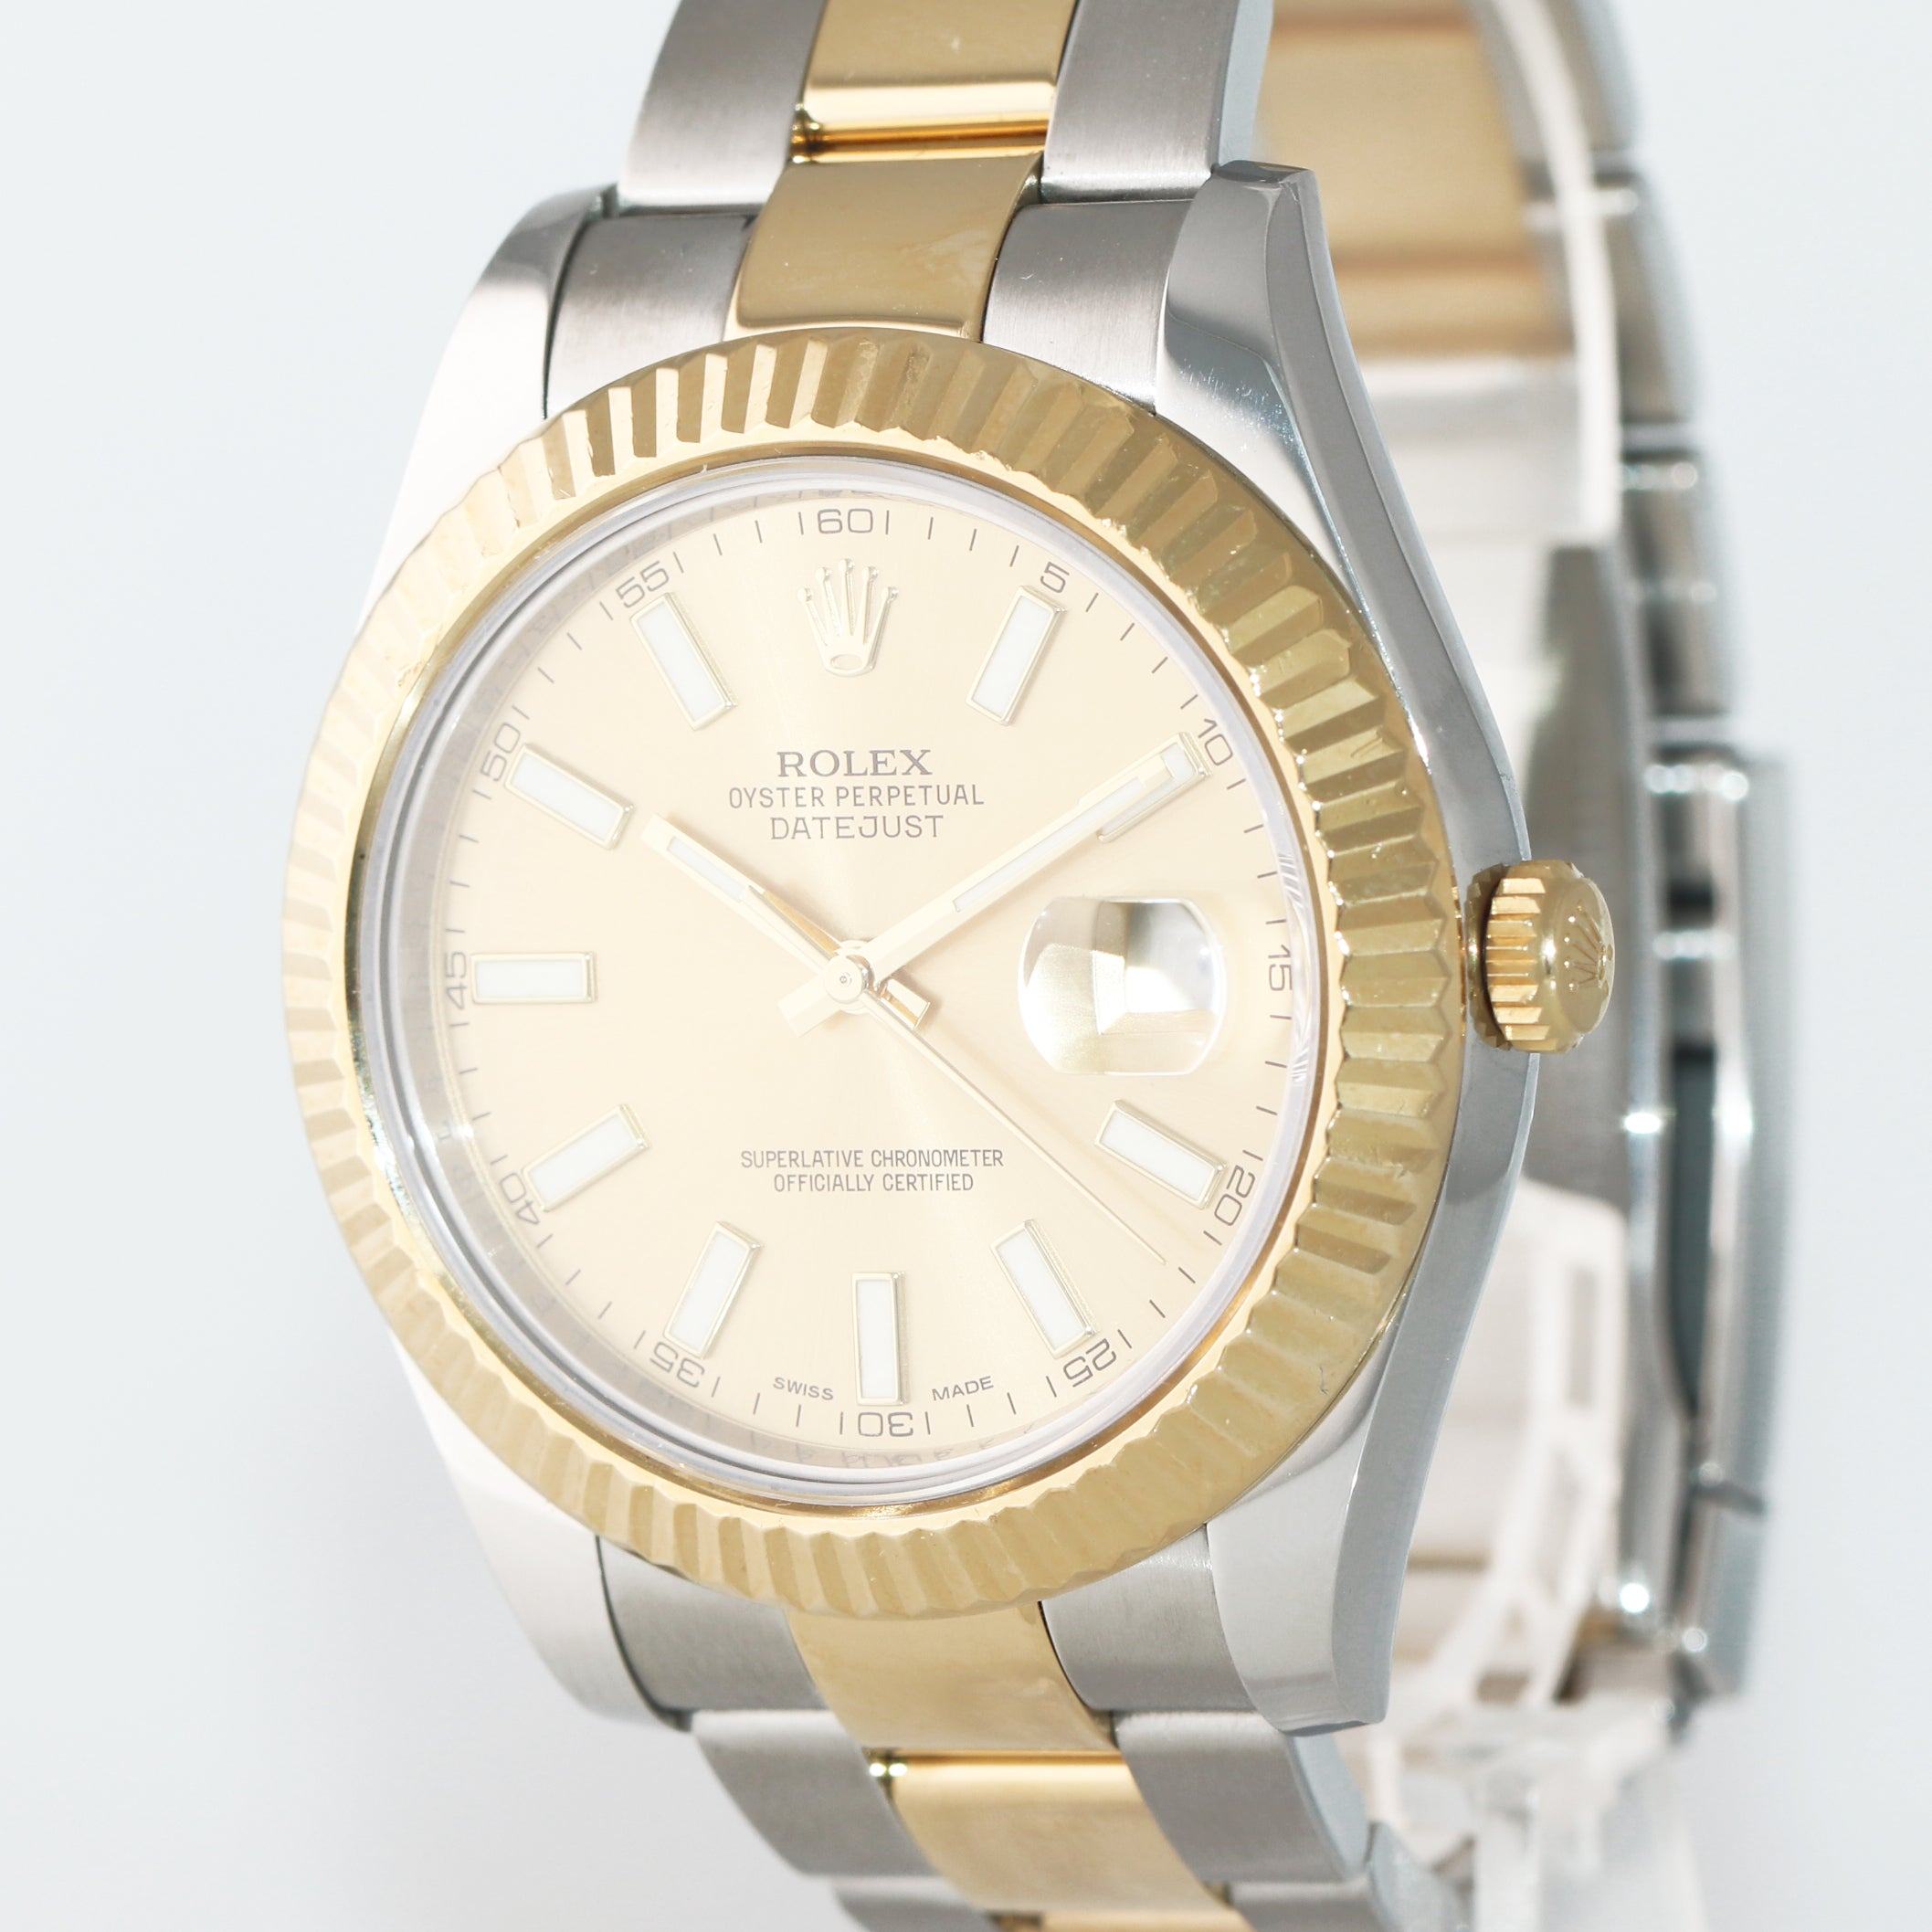 2015 PAPERS MINT Rolex Datejust 2 Champagne Stick 116333 Two-Tone Gold Watch